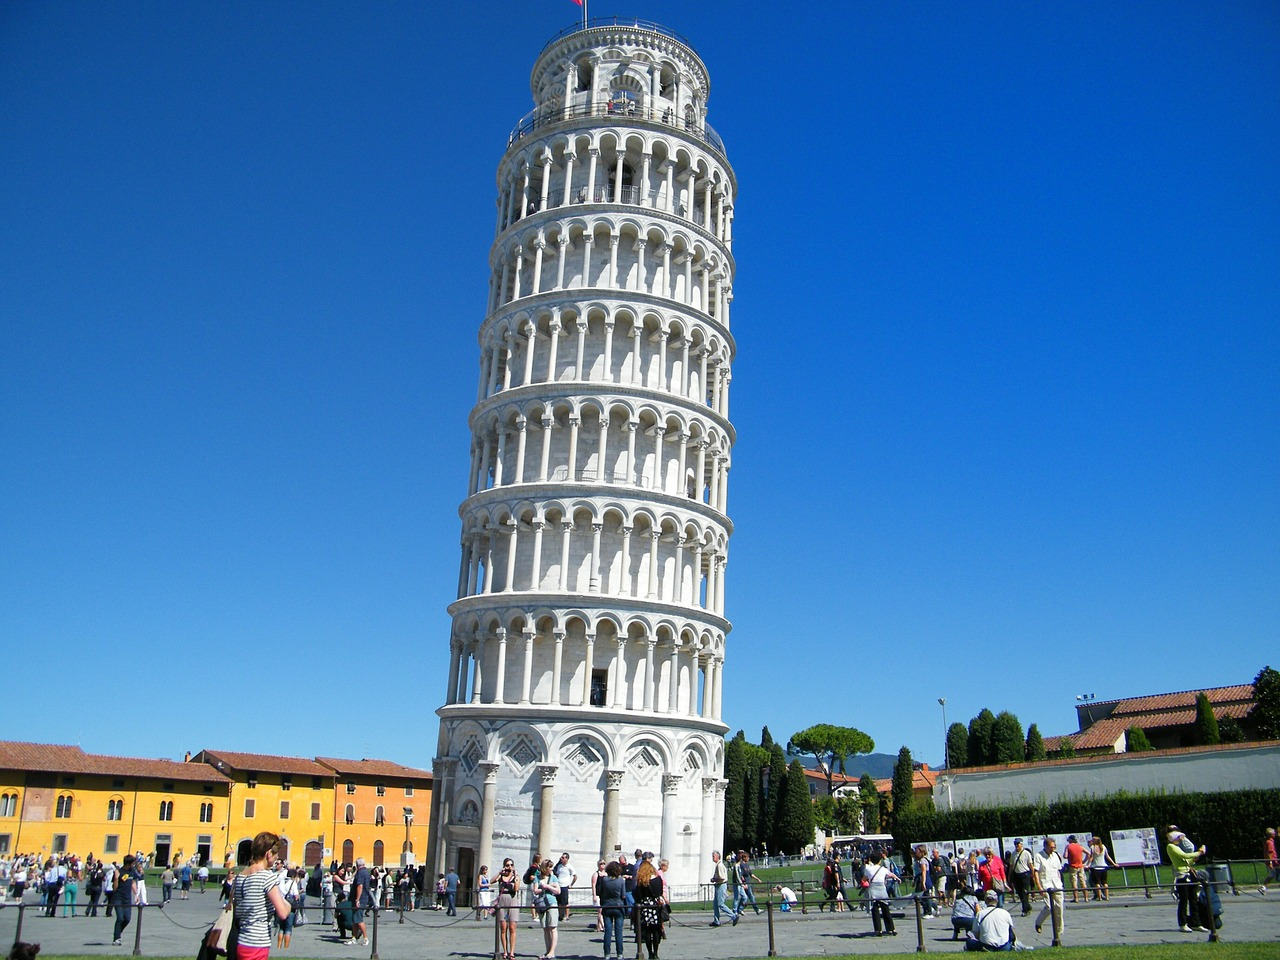 Leaning Tower of Pisa- one of the top tourist attractions in Italy